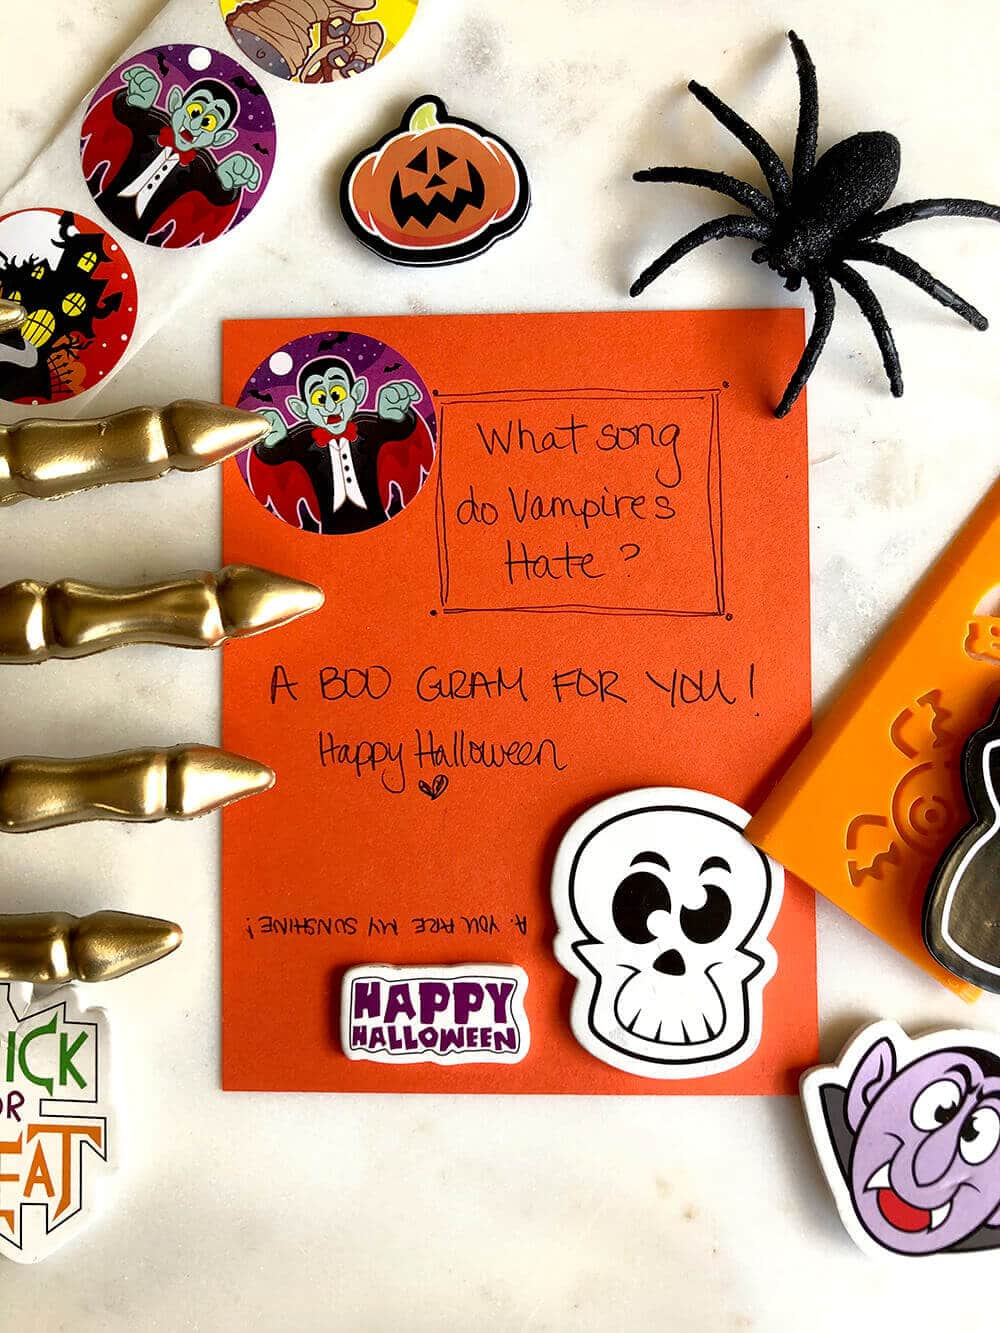 BOO Gram for Halloween kindness